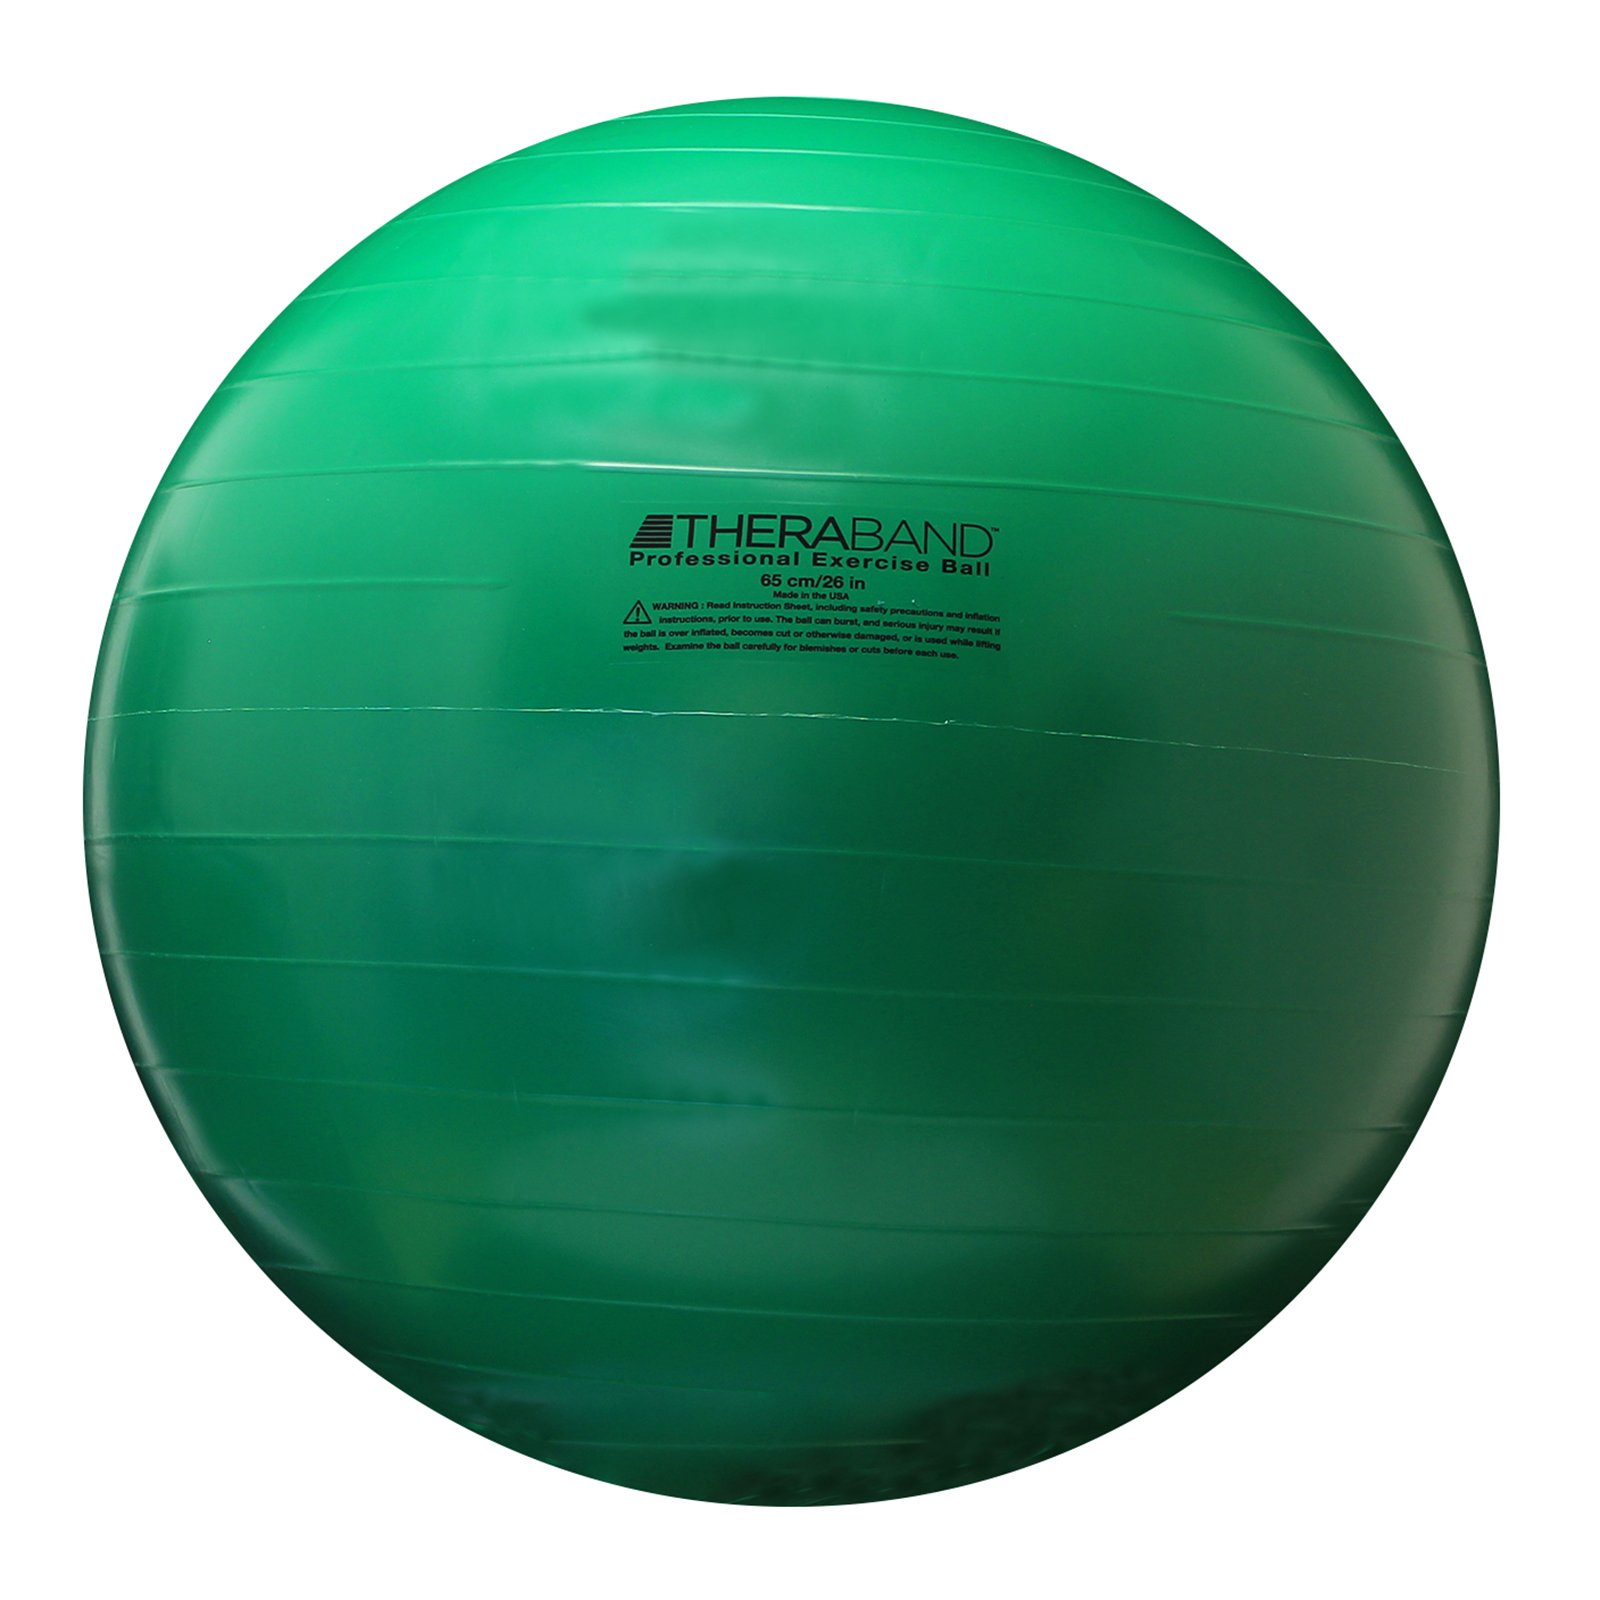 TheraBand Exercise Ball, Stability Ball with 65 cm Diameter for Athletes 5'7'' to 6'1'' Tall, Standard Fitness Ball for Posture, Balance, Yoga, Pilates, Core, Rehab, Green